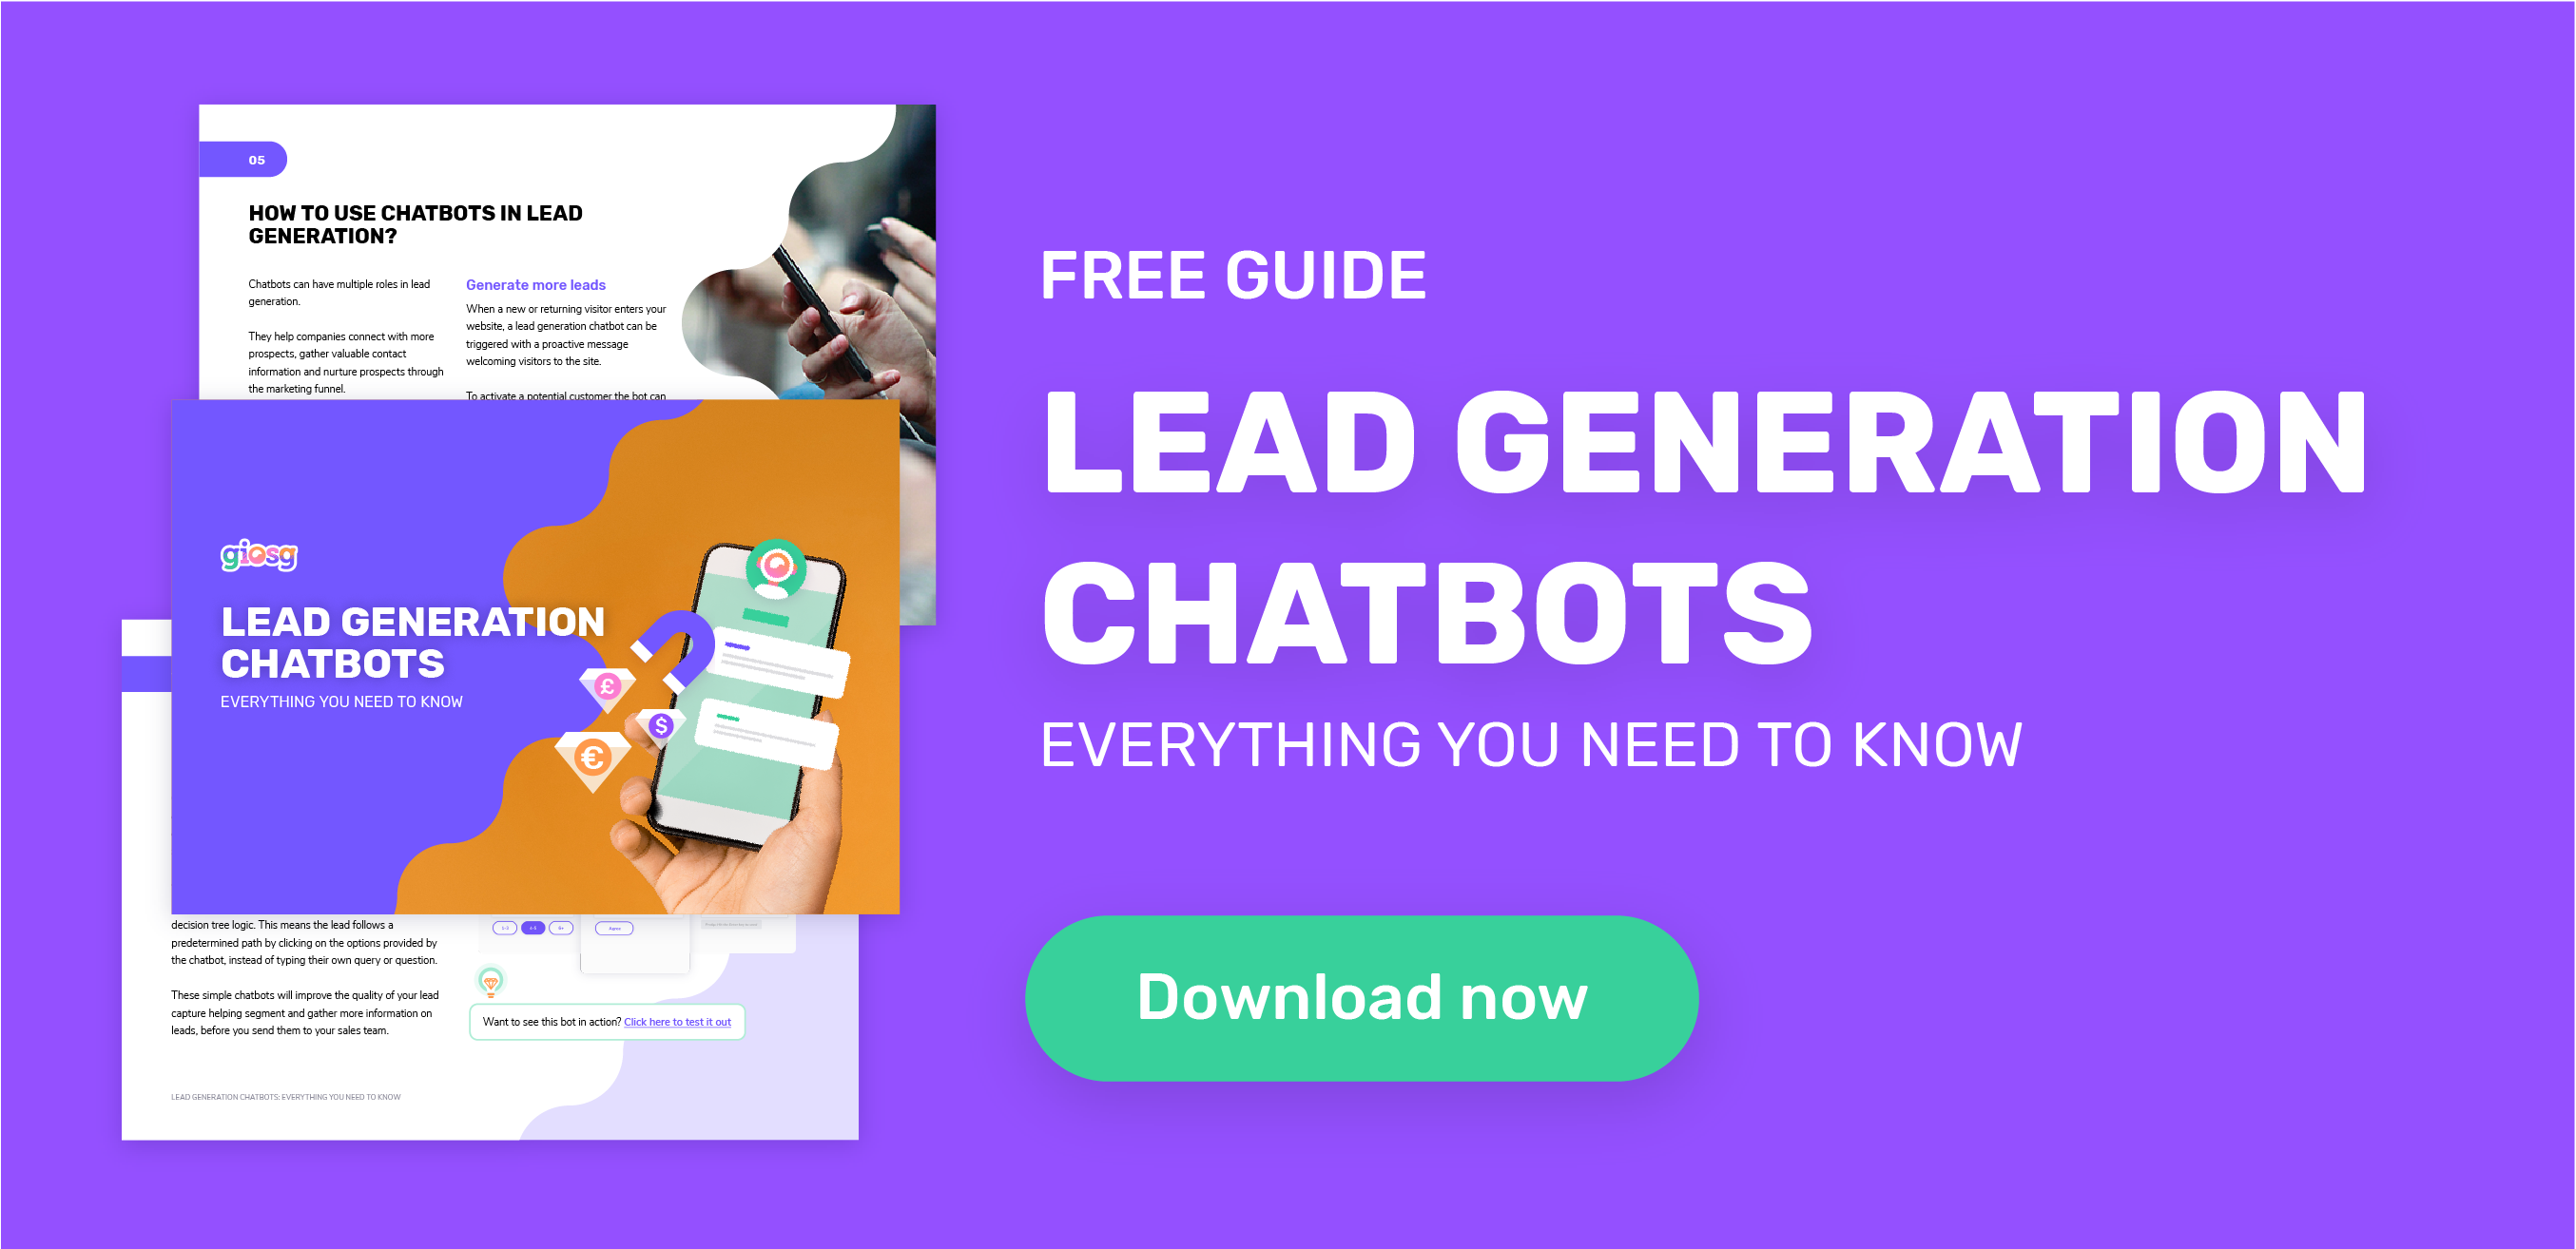 Download our lead generation chatbot guide